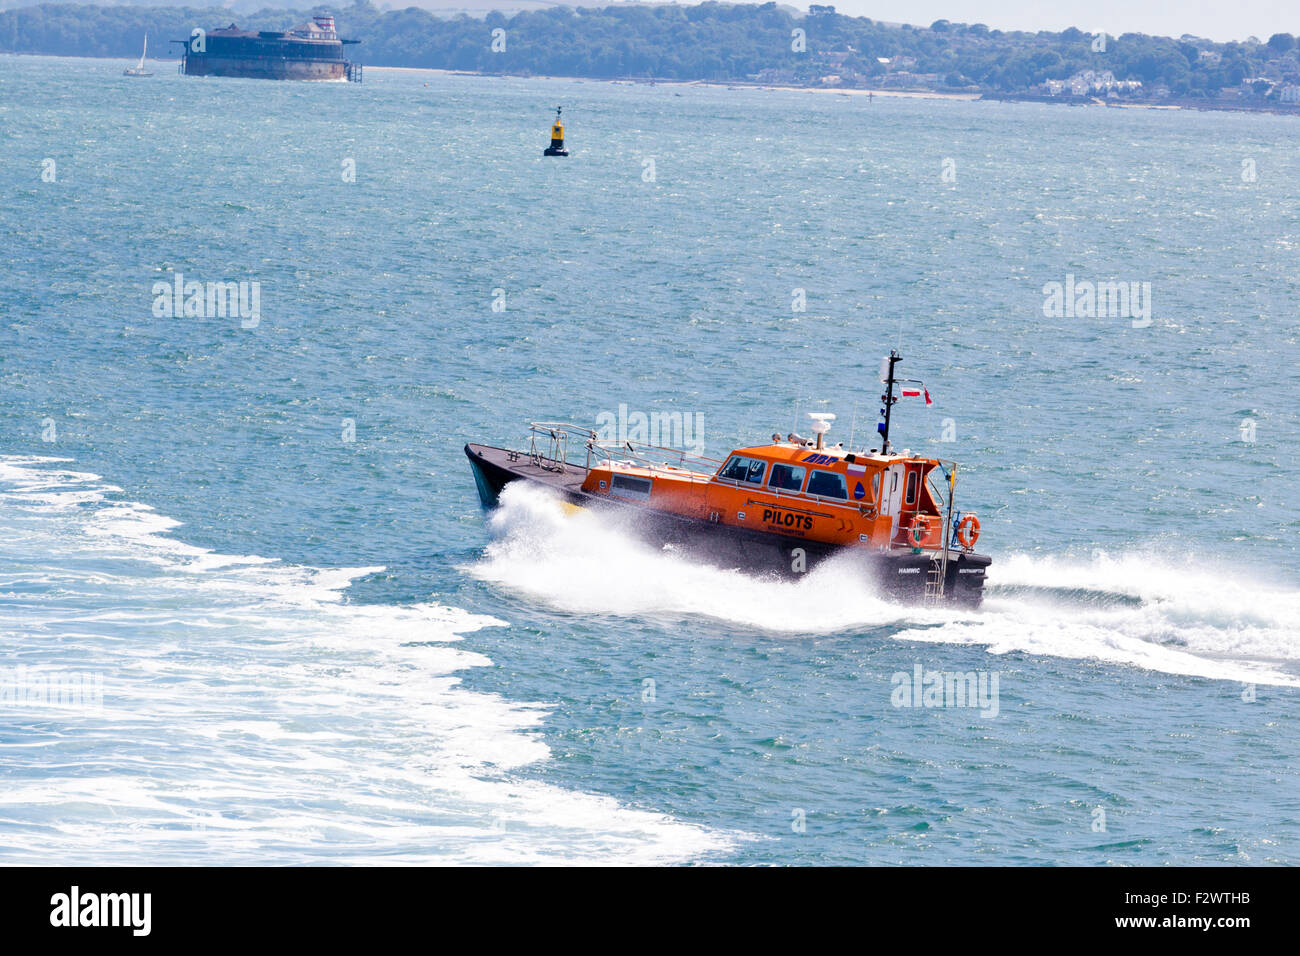 A Southampton pilot's launch in The Solent off Portsmouth, Hampshire UK - Stock Image